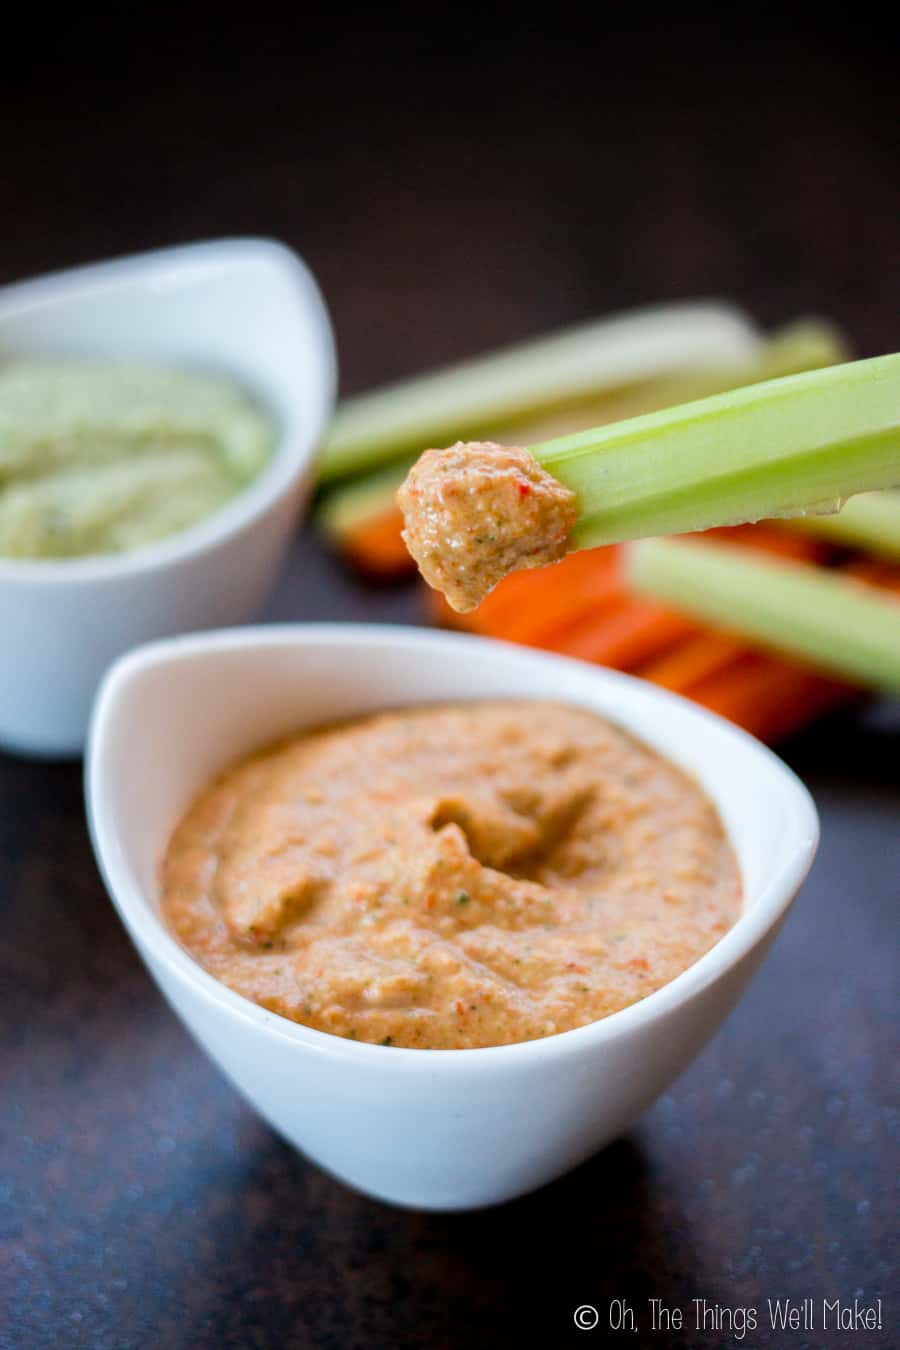 Dipping celery into roasted red pepper zucchini hummus